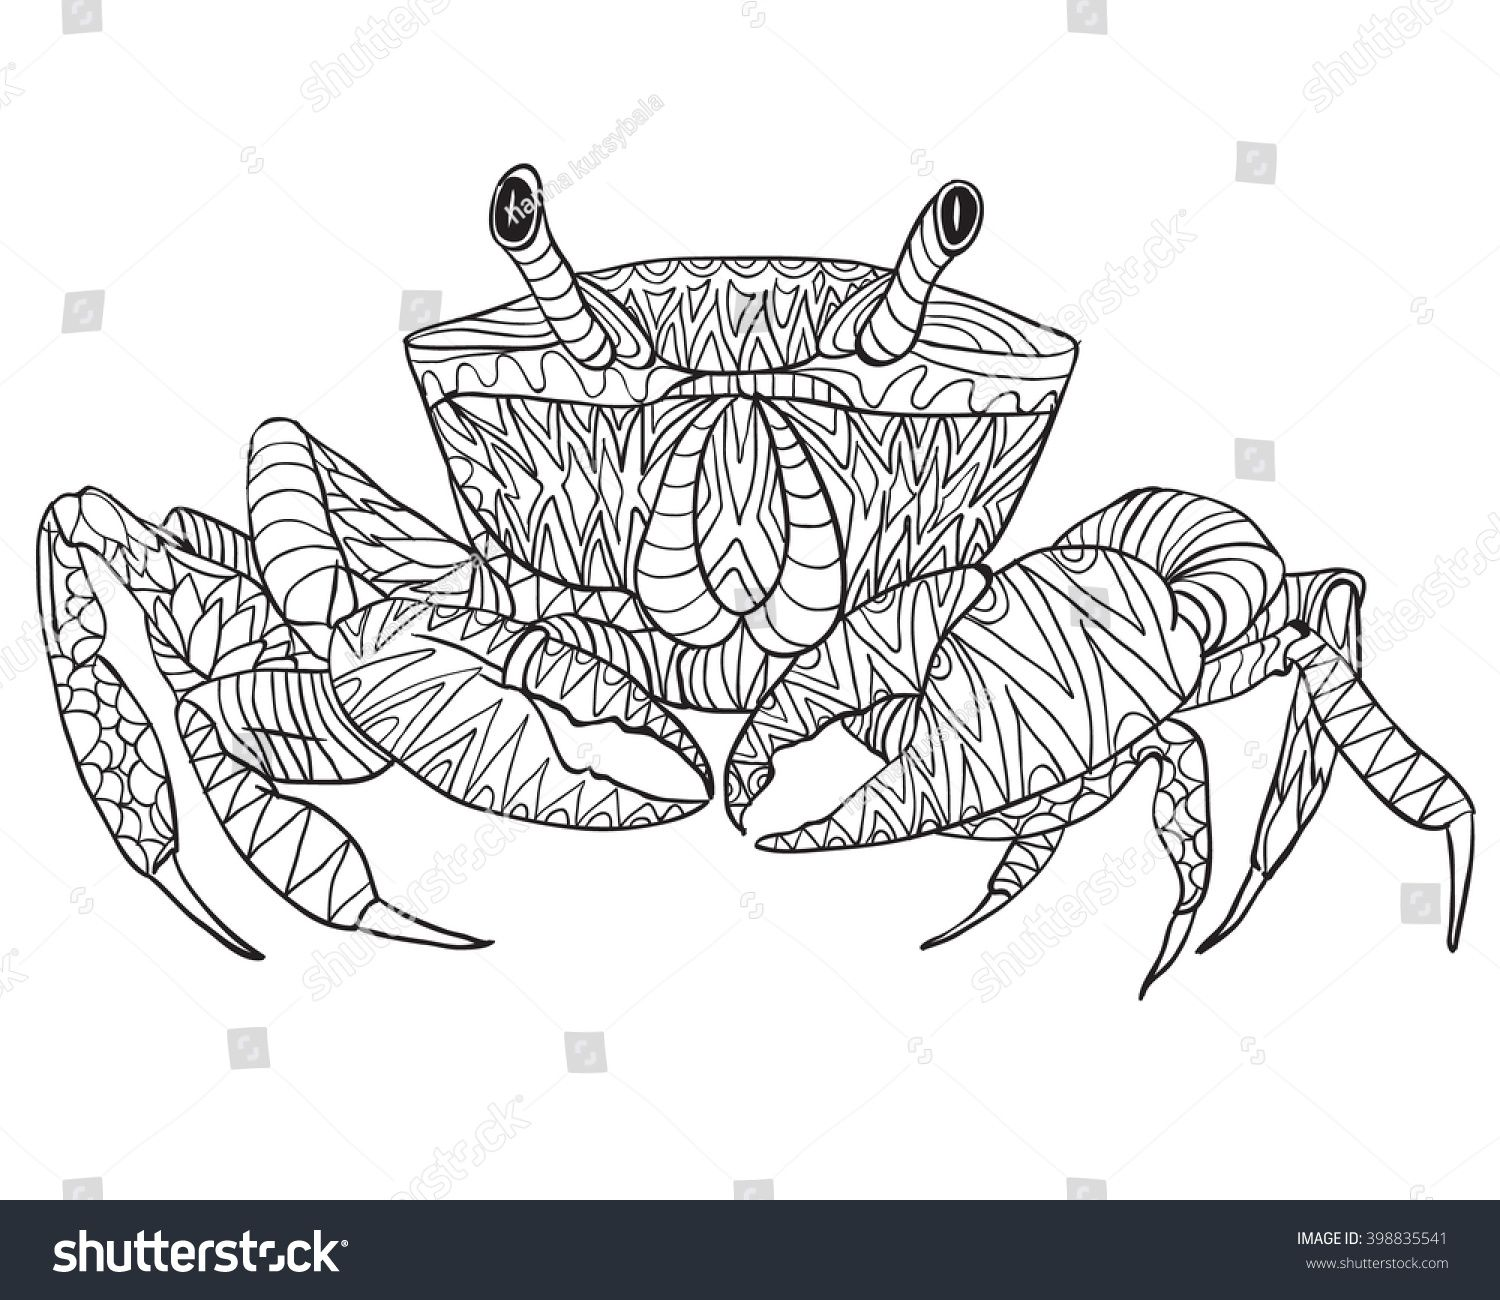 Hand Drawn Coloring Pages With Crab Illustration For Adult Anti Stress Coloring Books With High Details Isolated Dessins Sur Les Mains Coloriage Illustration